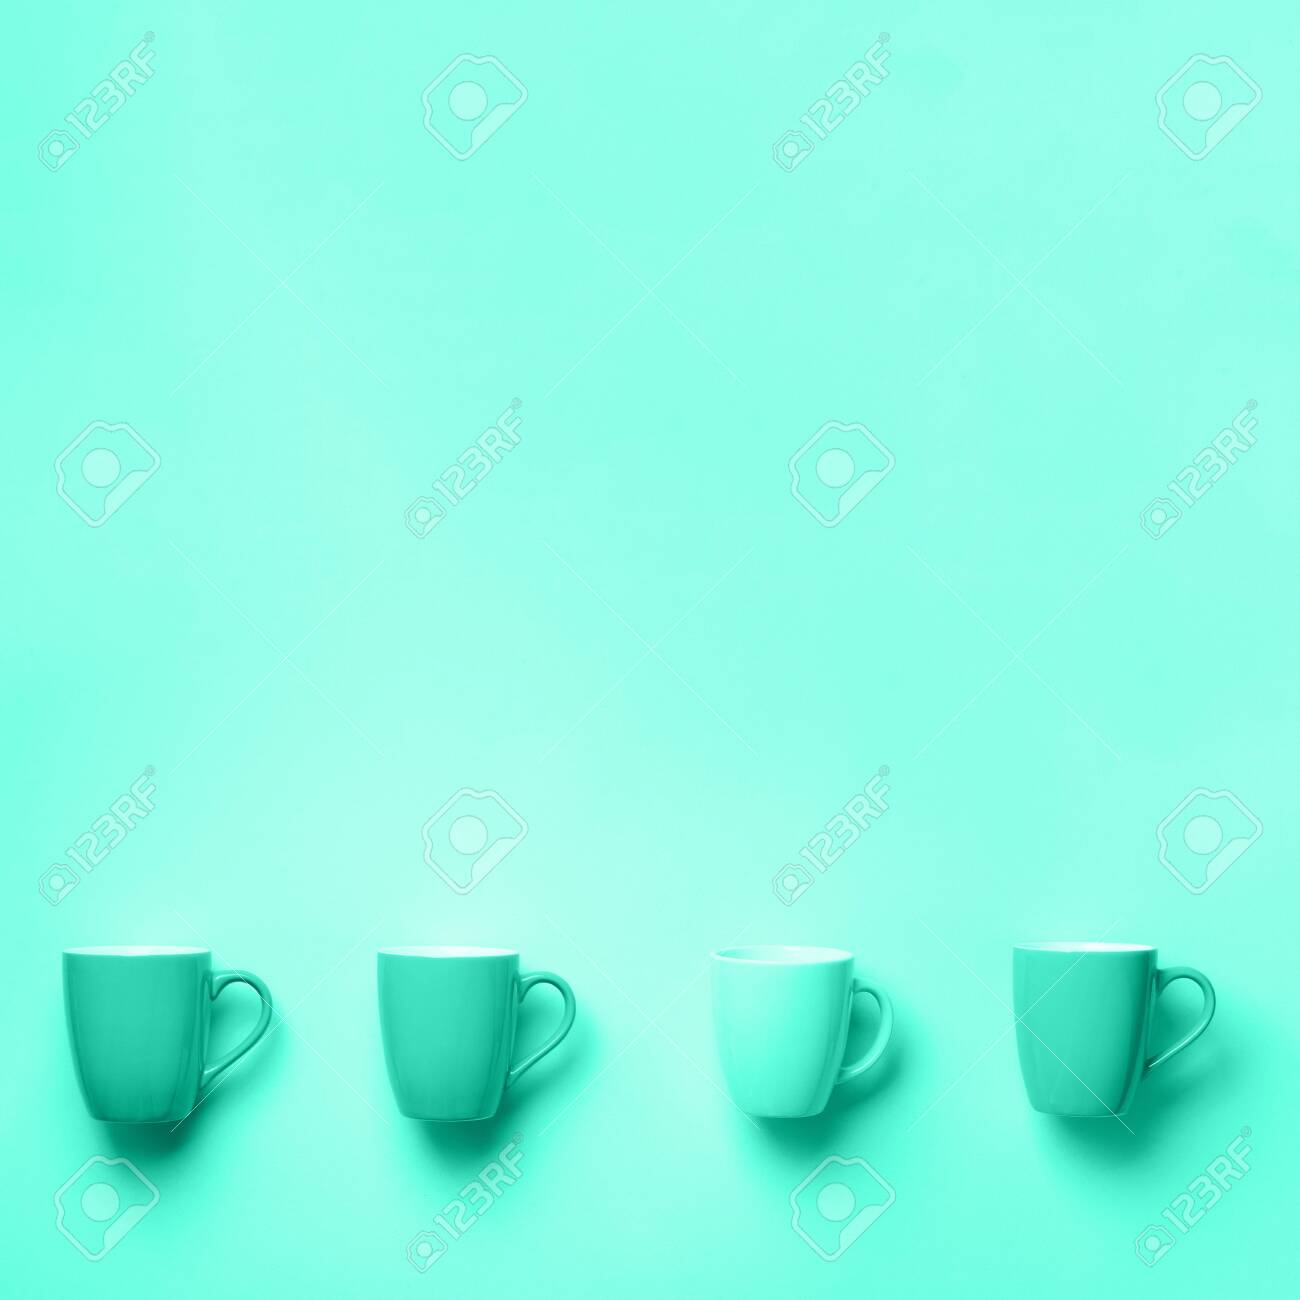 pattern from mint cups over trendy color background trendy green stock photo picture and royalty free image image 140972646 pattern from mint cups over trendy color background trendy green